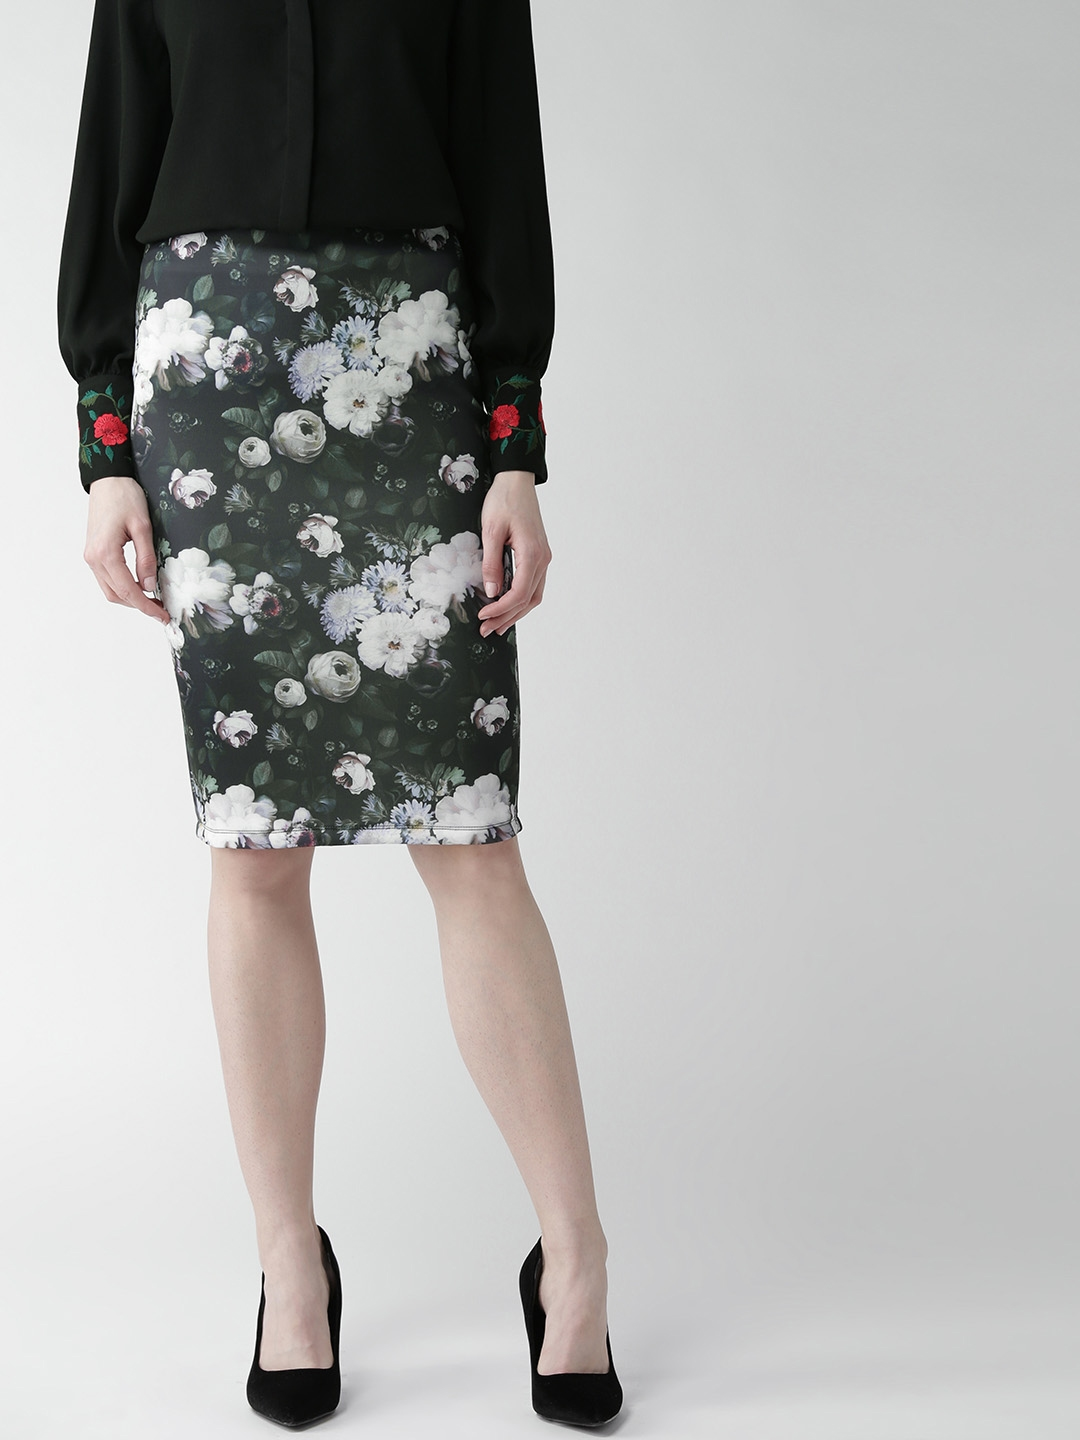 8781604c7304 Buy 20Dresses Green & White Floral Print Pencil Skirt - Skirts for ...